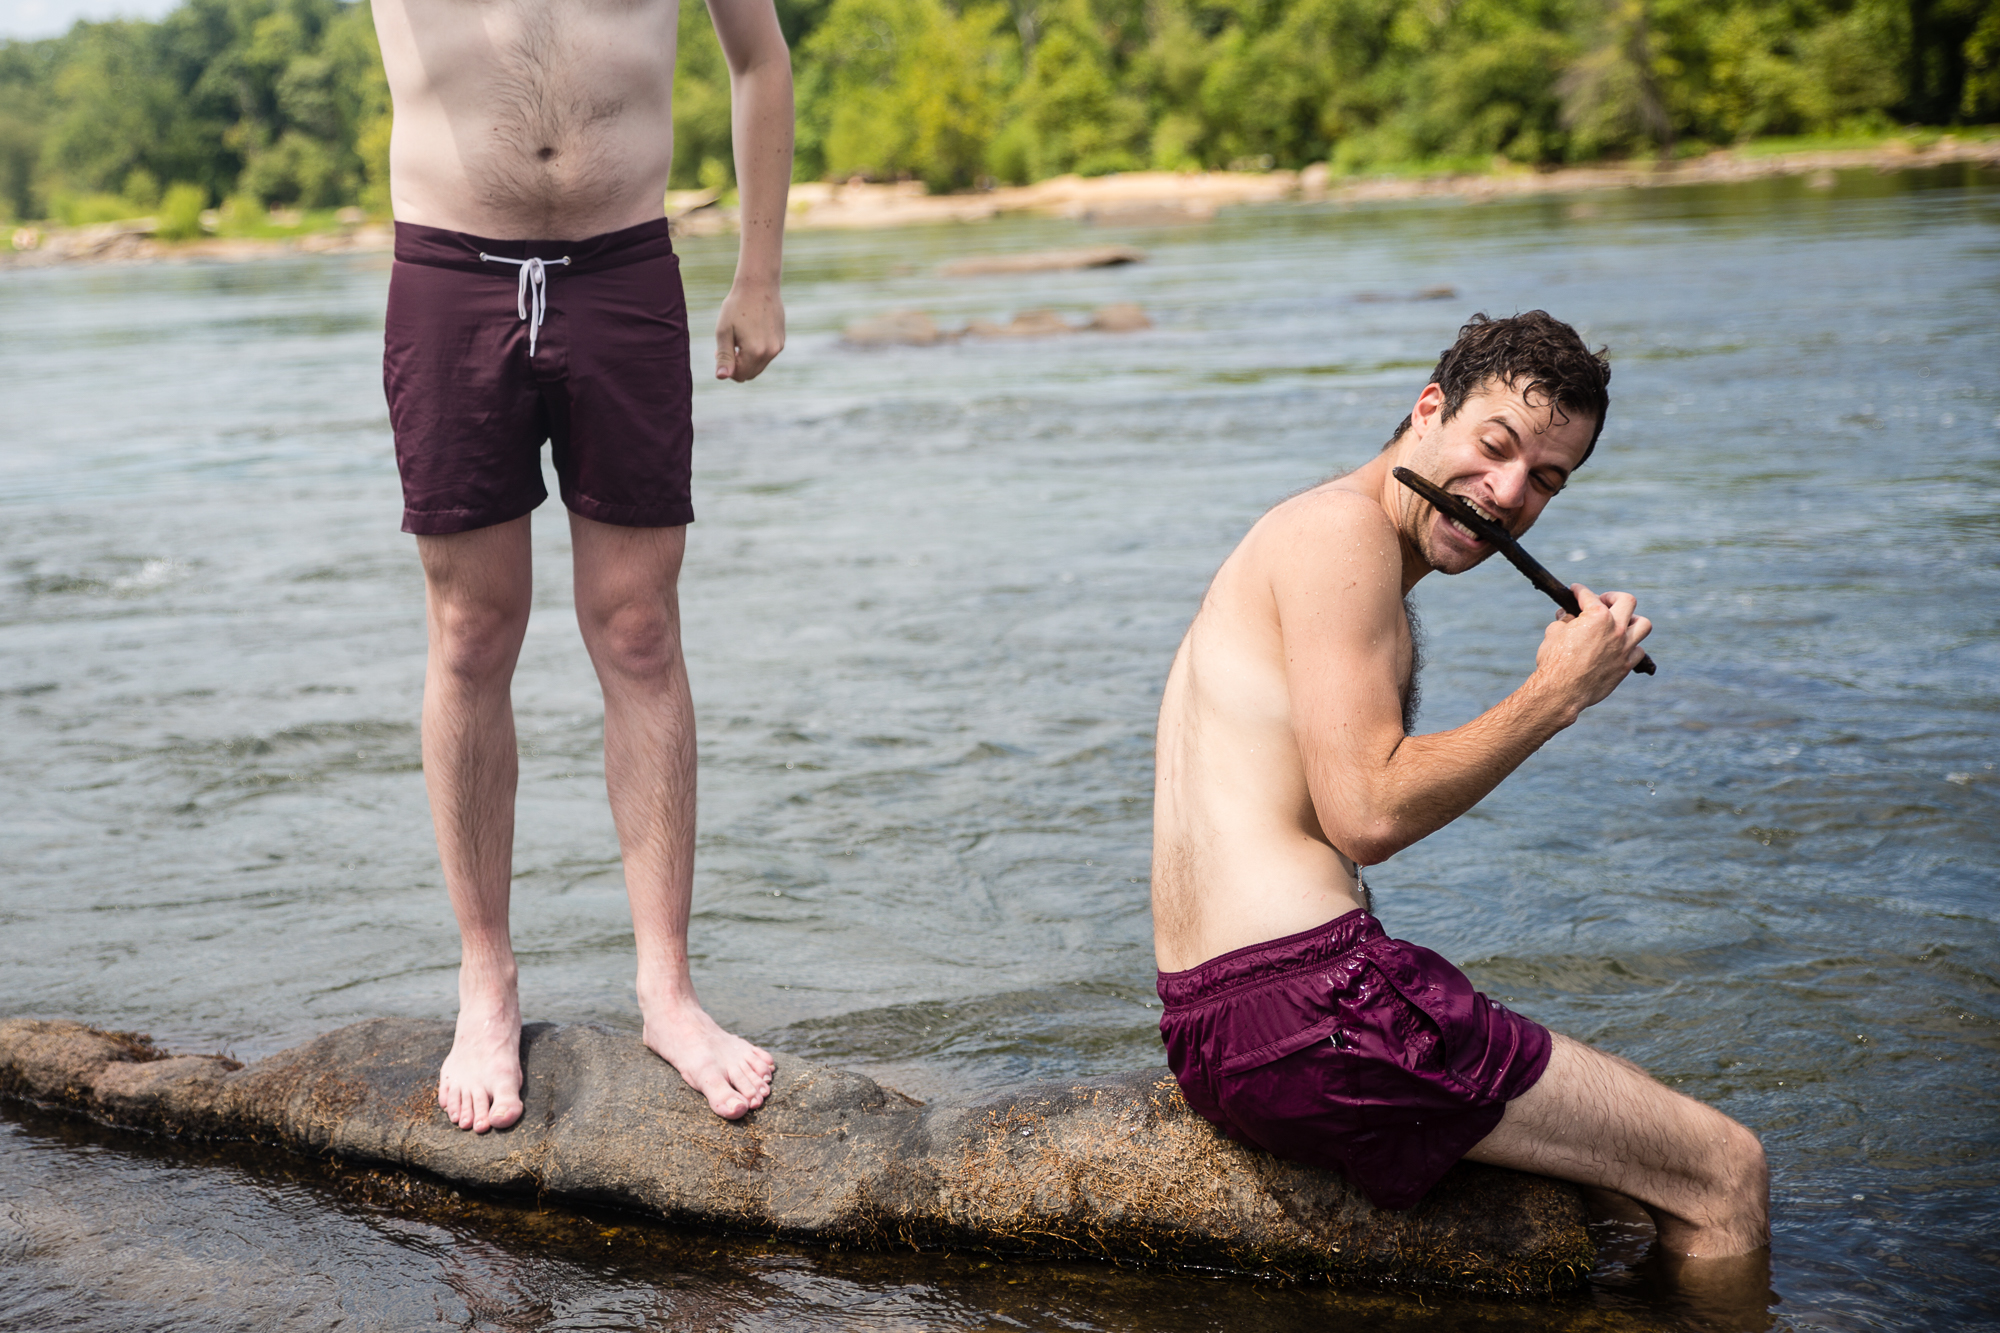 Jon Mann channels his inner animal at the James River in Richmond.